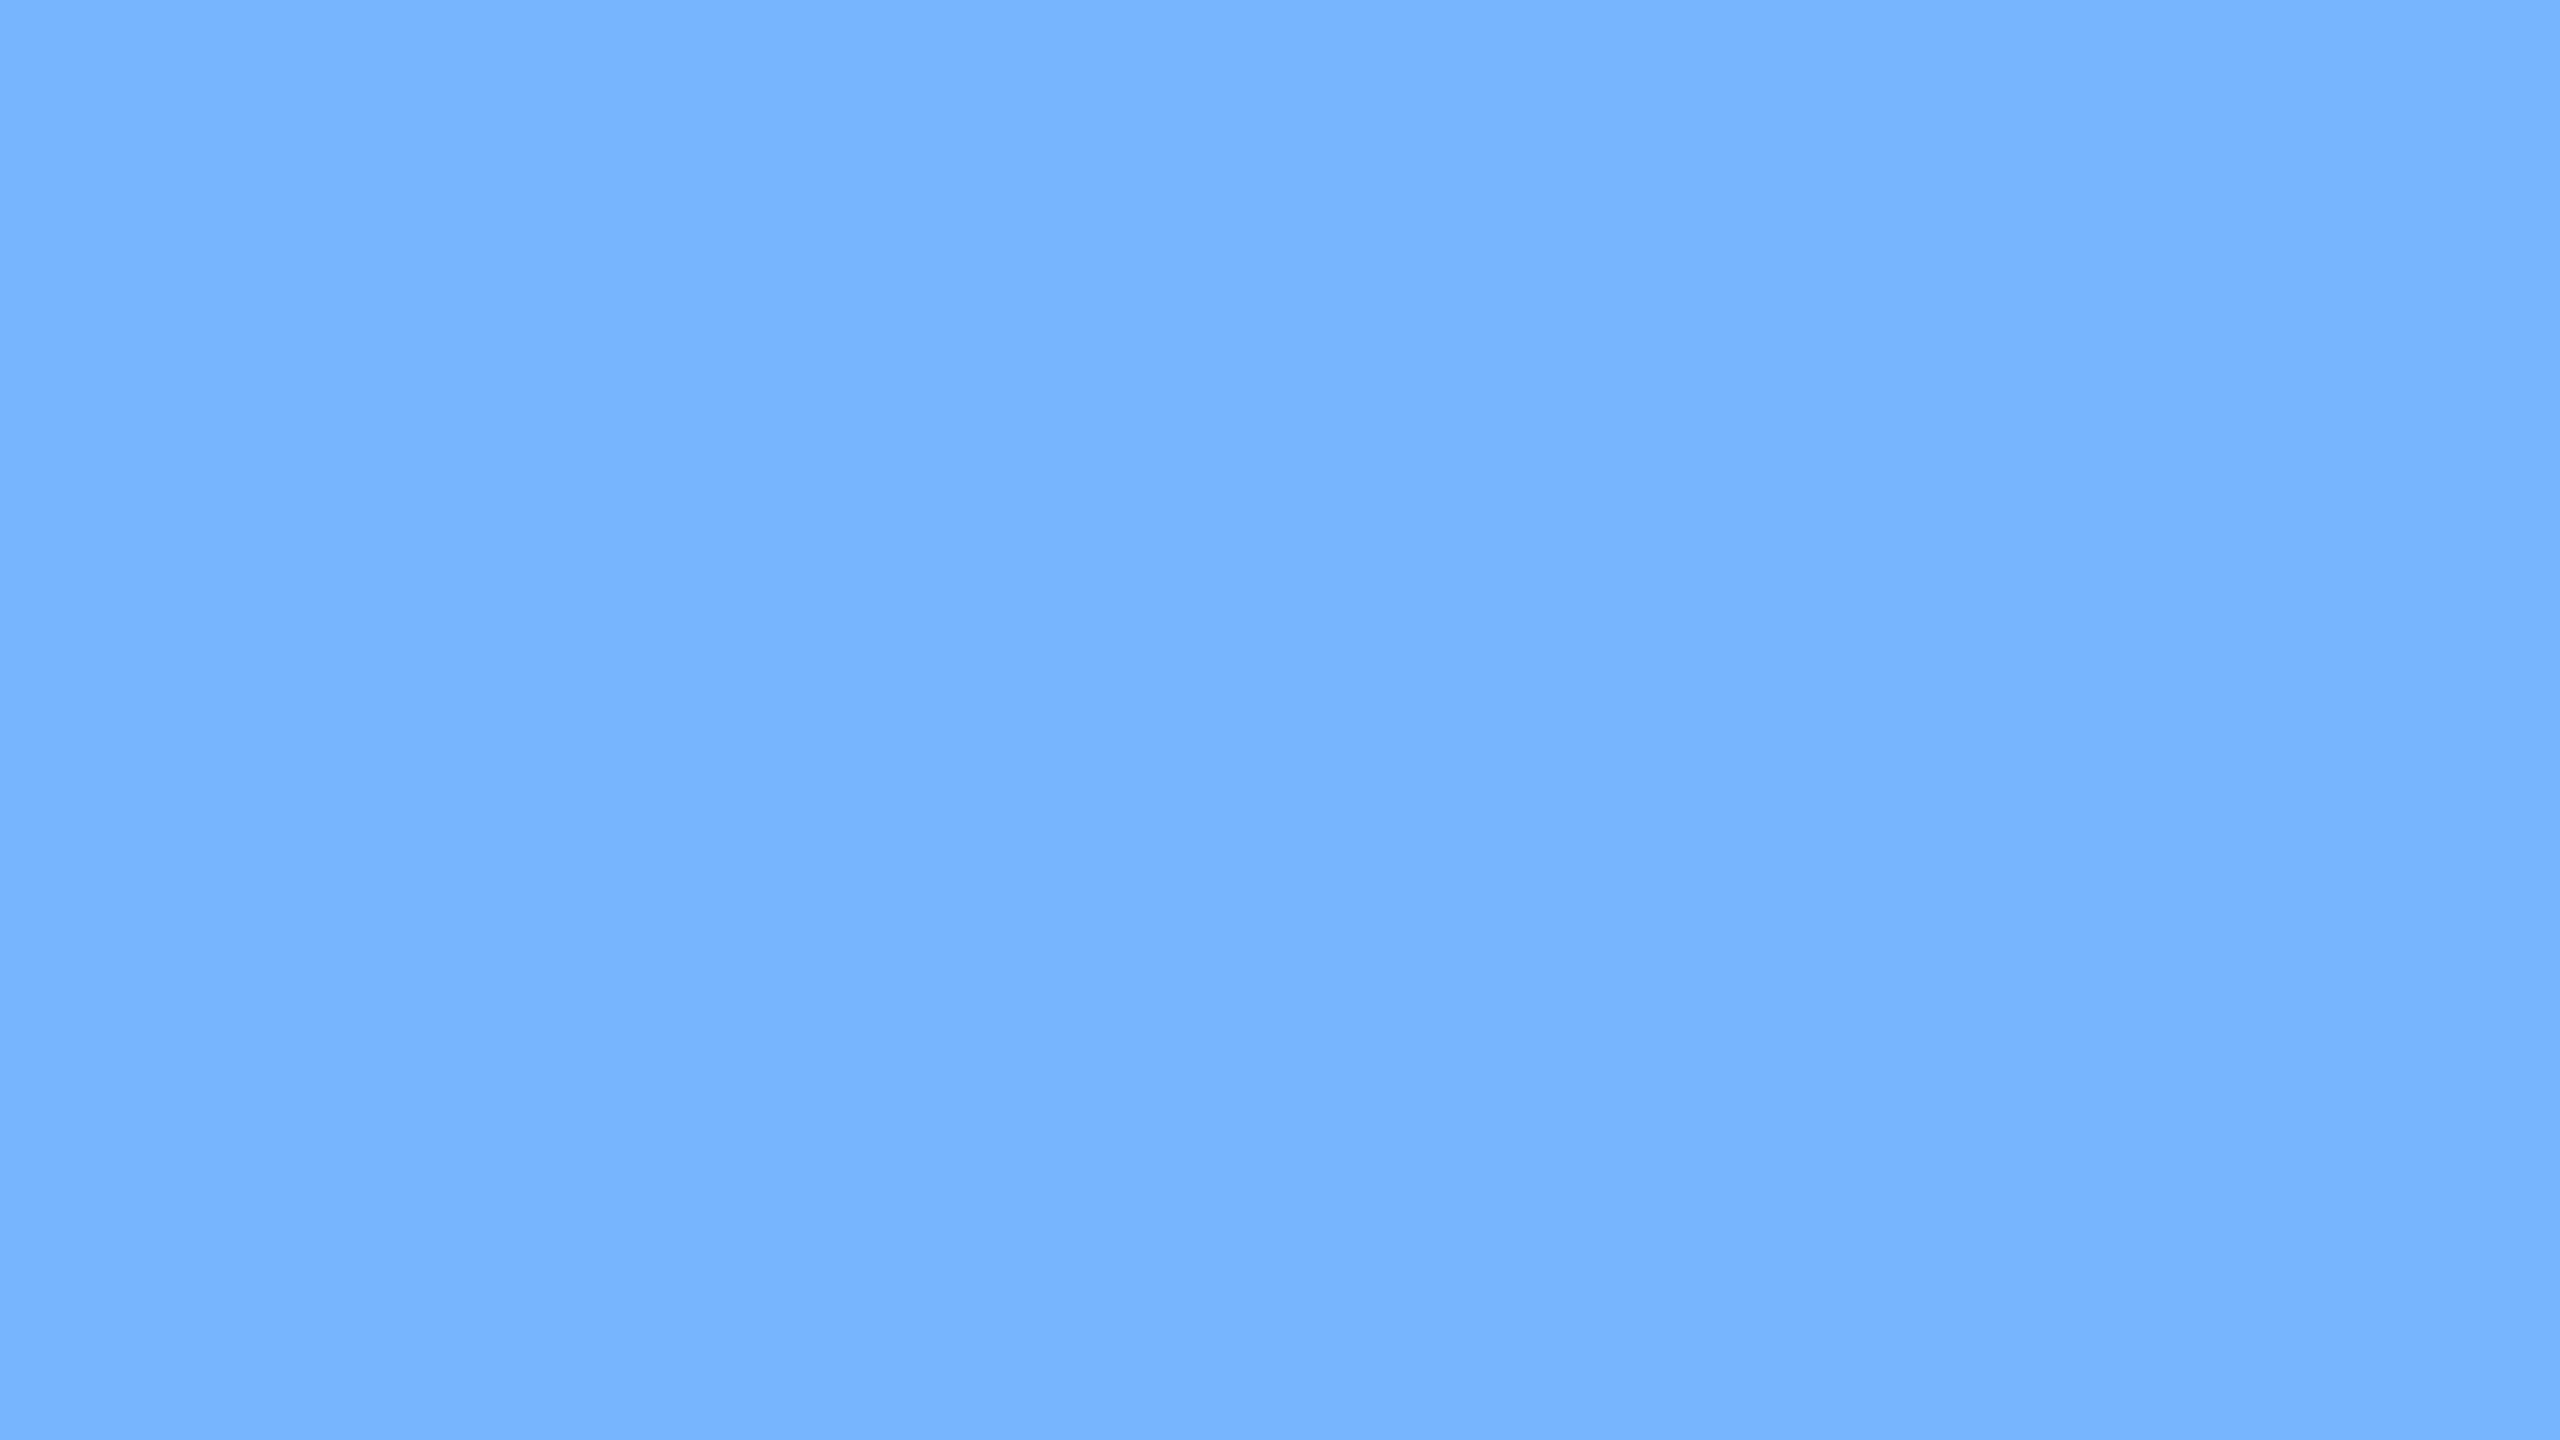 2560x1440 French Sky Blue Solid Color Background